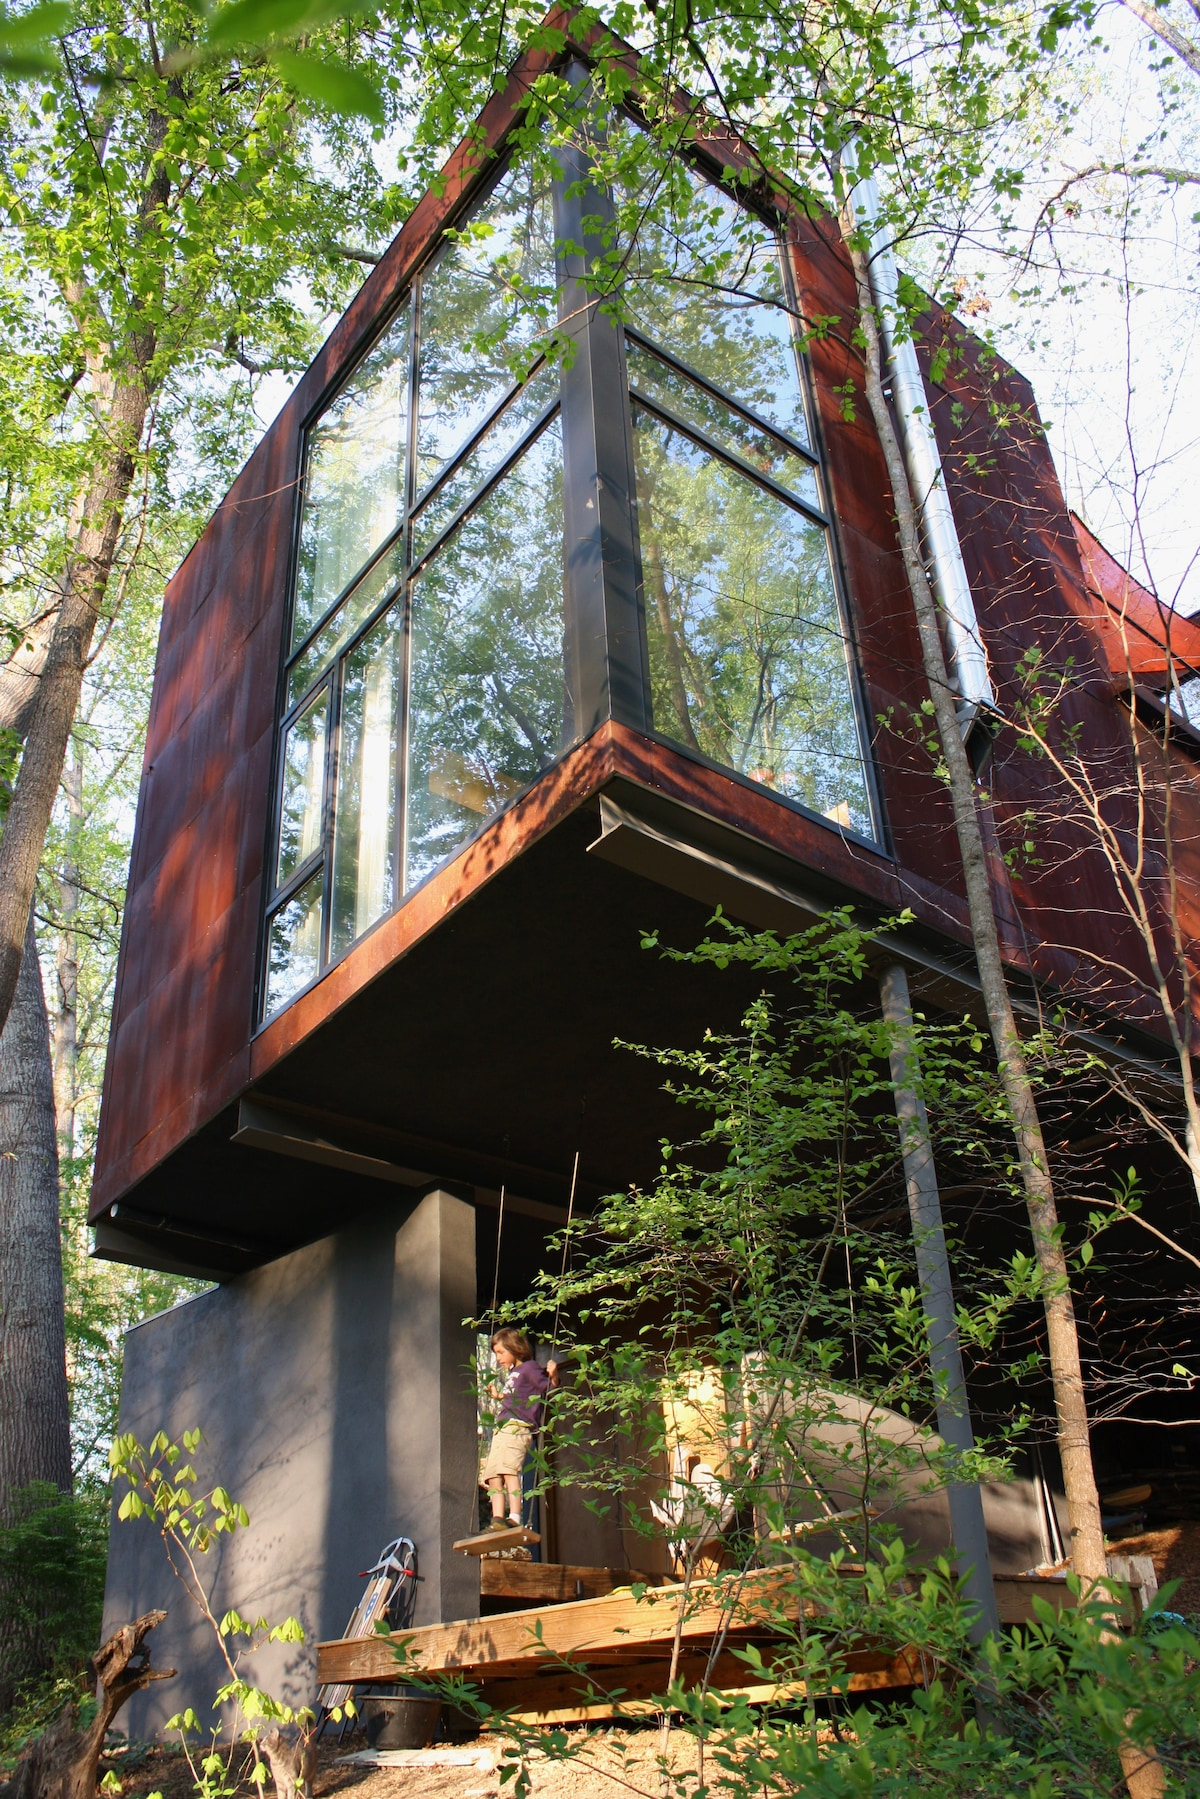 West A'ville sanctuary in the trees